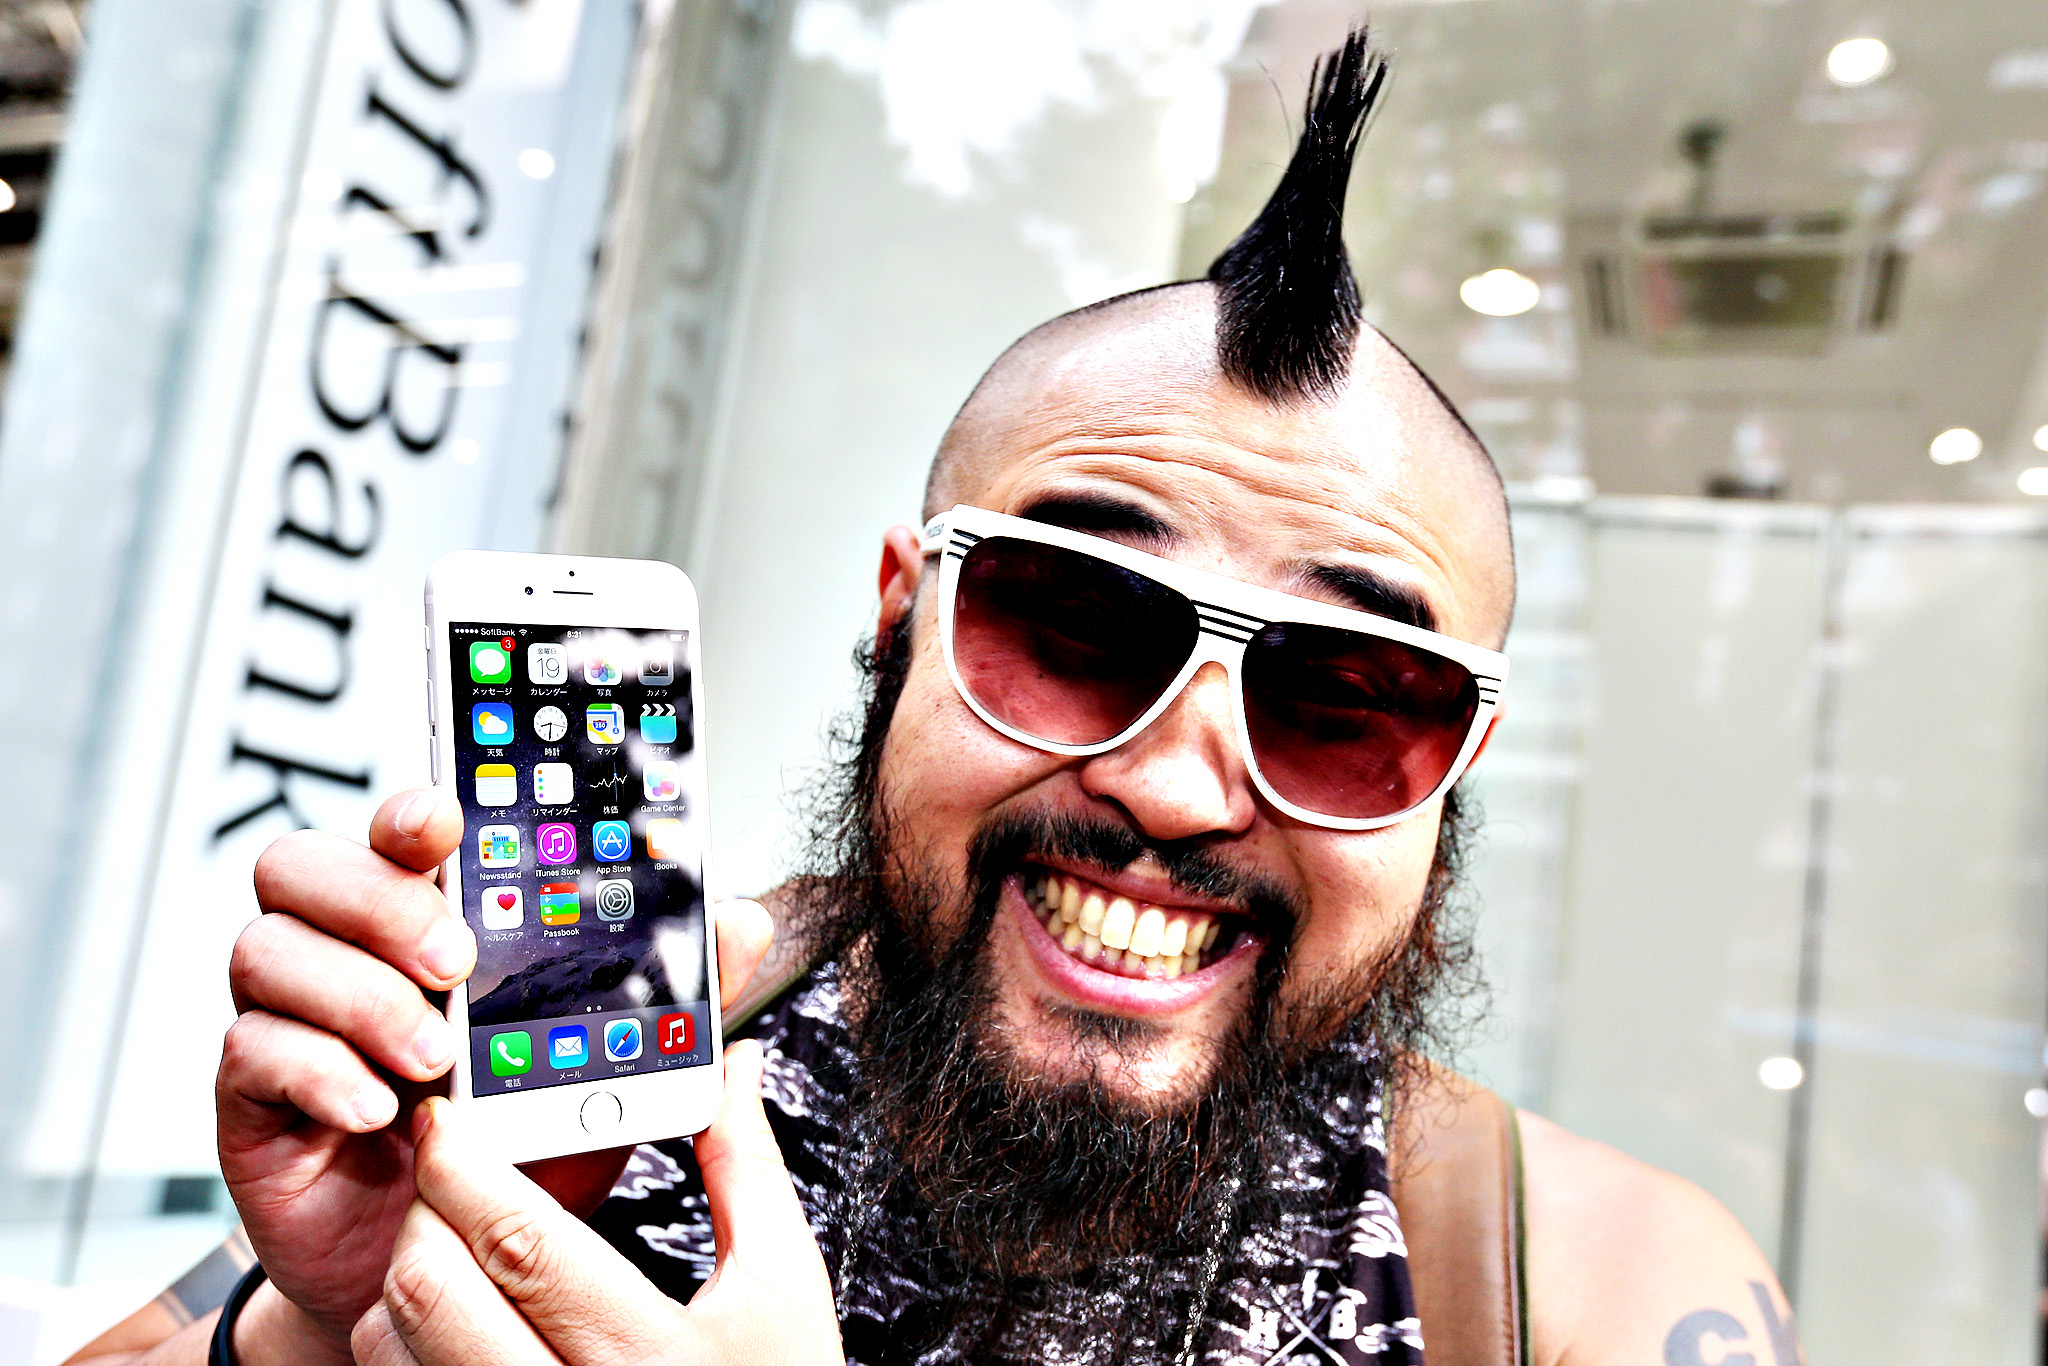 """Butch,"" the first customer at SoftBank Corp.'s Omotesando store displays his newly purchased Apple Inc. iPhone 6 for a photograph outside the store in Tokyo, Japan, on Friday, Sept. 19, 2014. Apple stores attracted long lines of shoppers for the debut of the latest iPhones, indicating healthy demand for the bigger-screen smartphones."